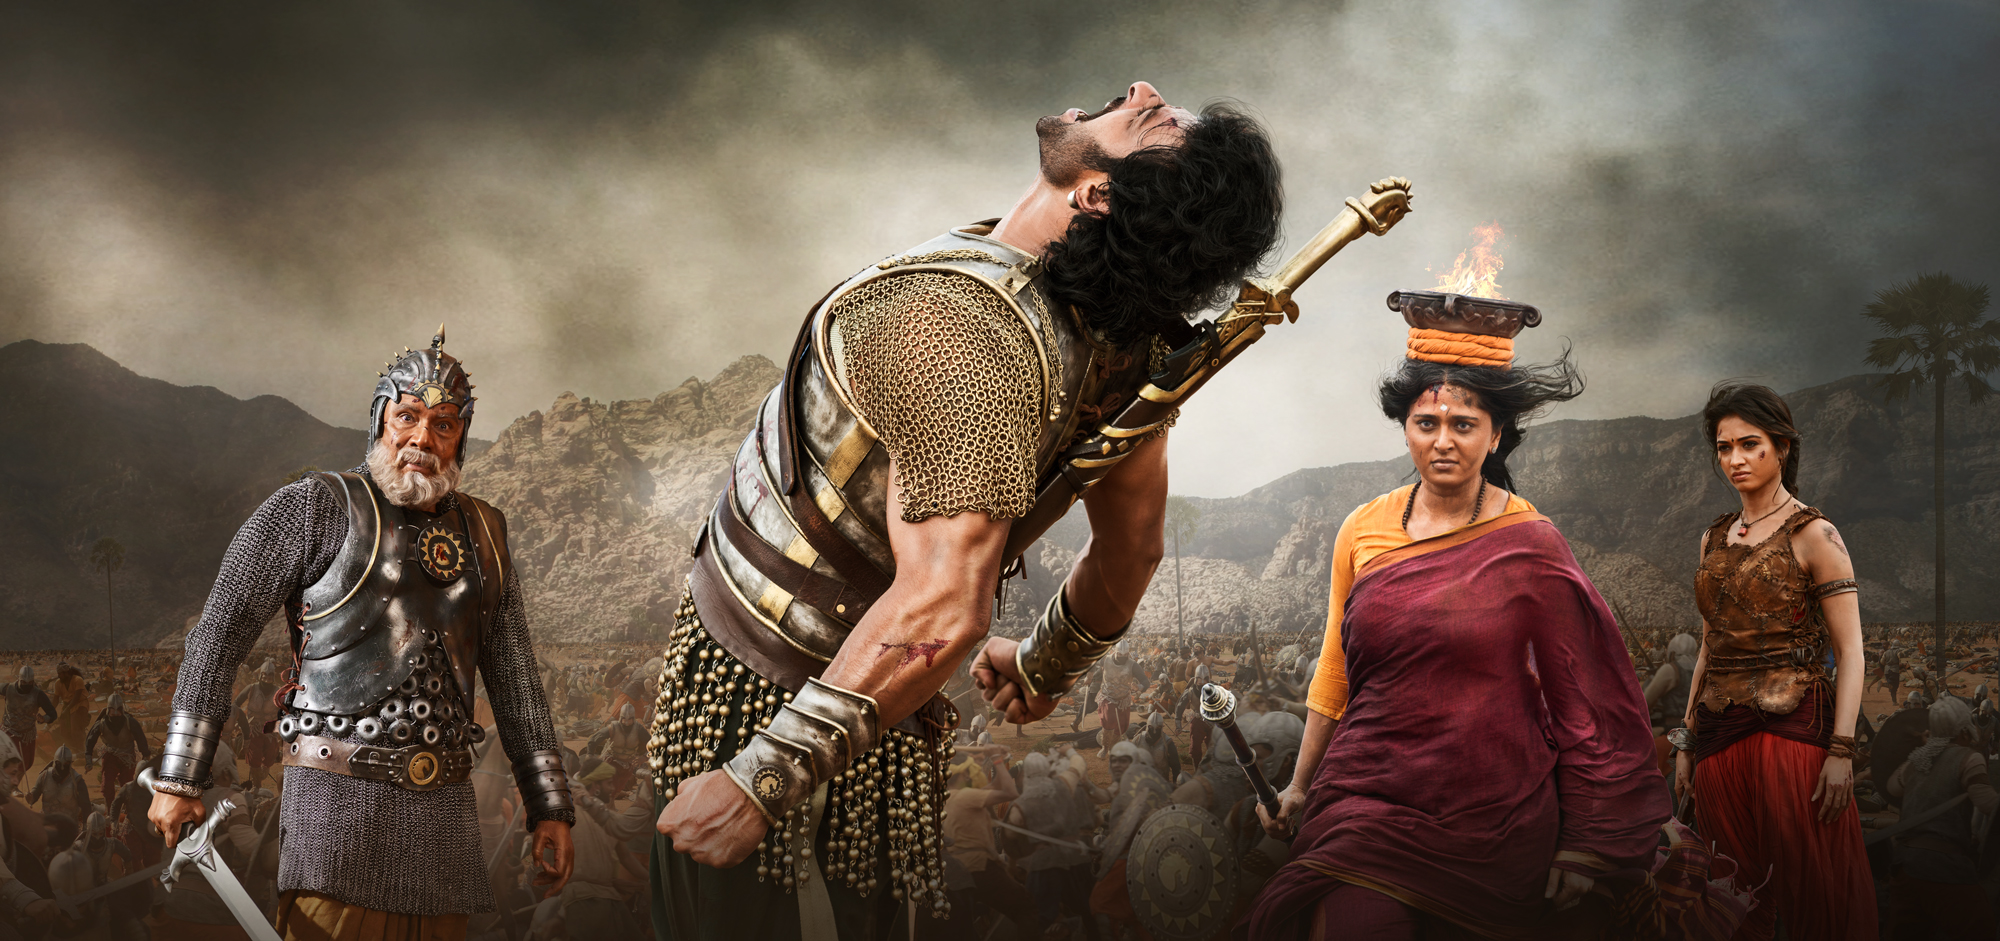 Baahubali 2: The Conclusion (2017) - Photo Gallery - IMDb